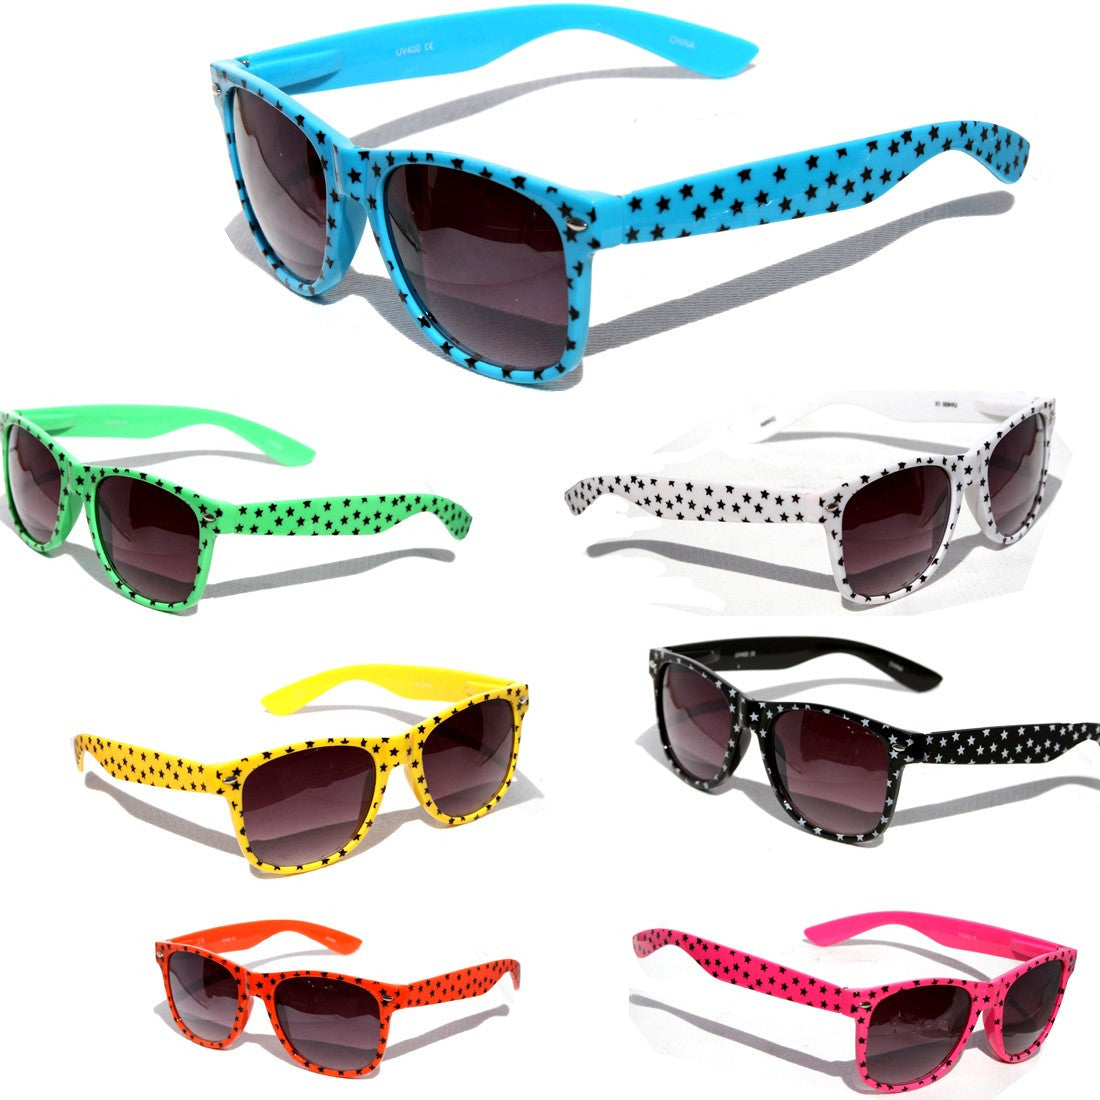 Stars Print Design Pattern Classic Sunglasses #P1543-13 - wholesalesunglasses.net